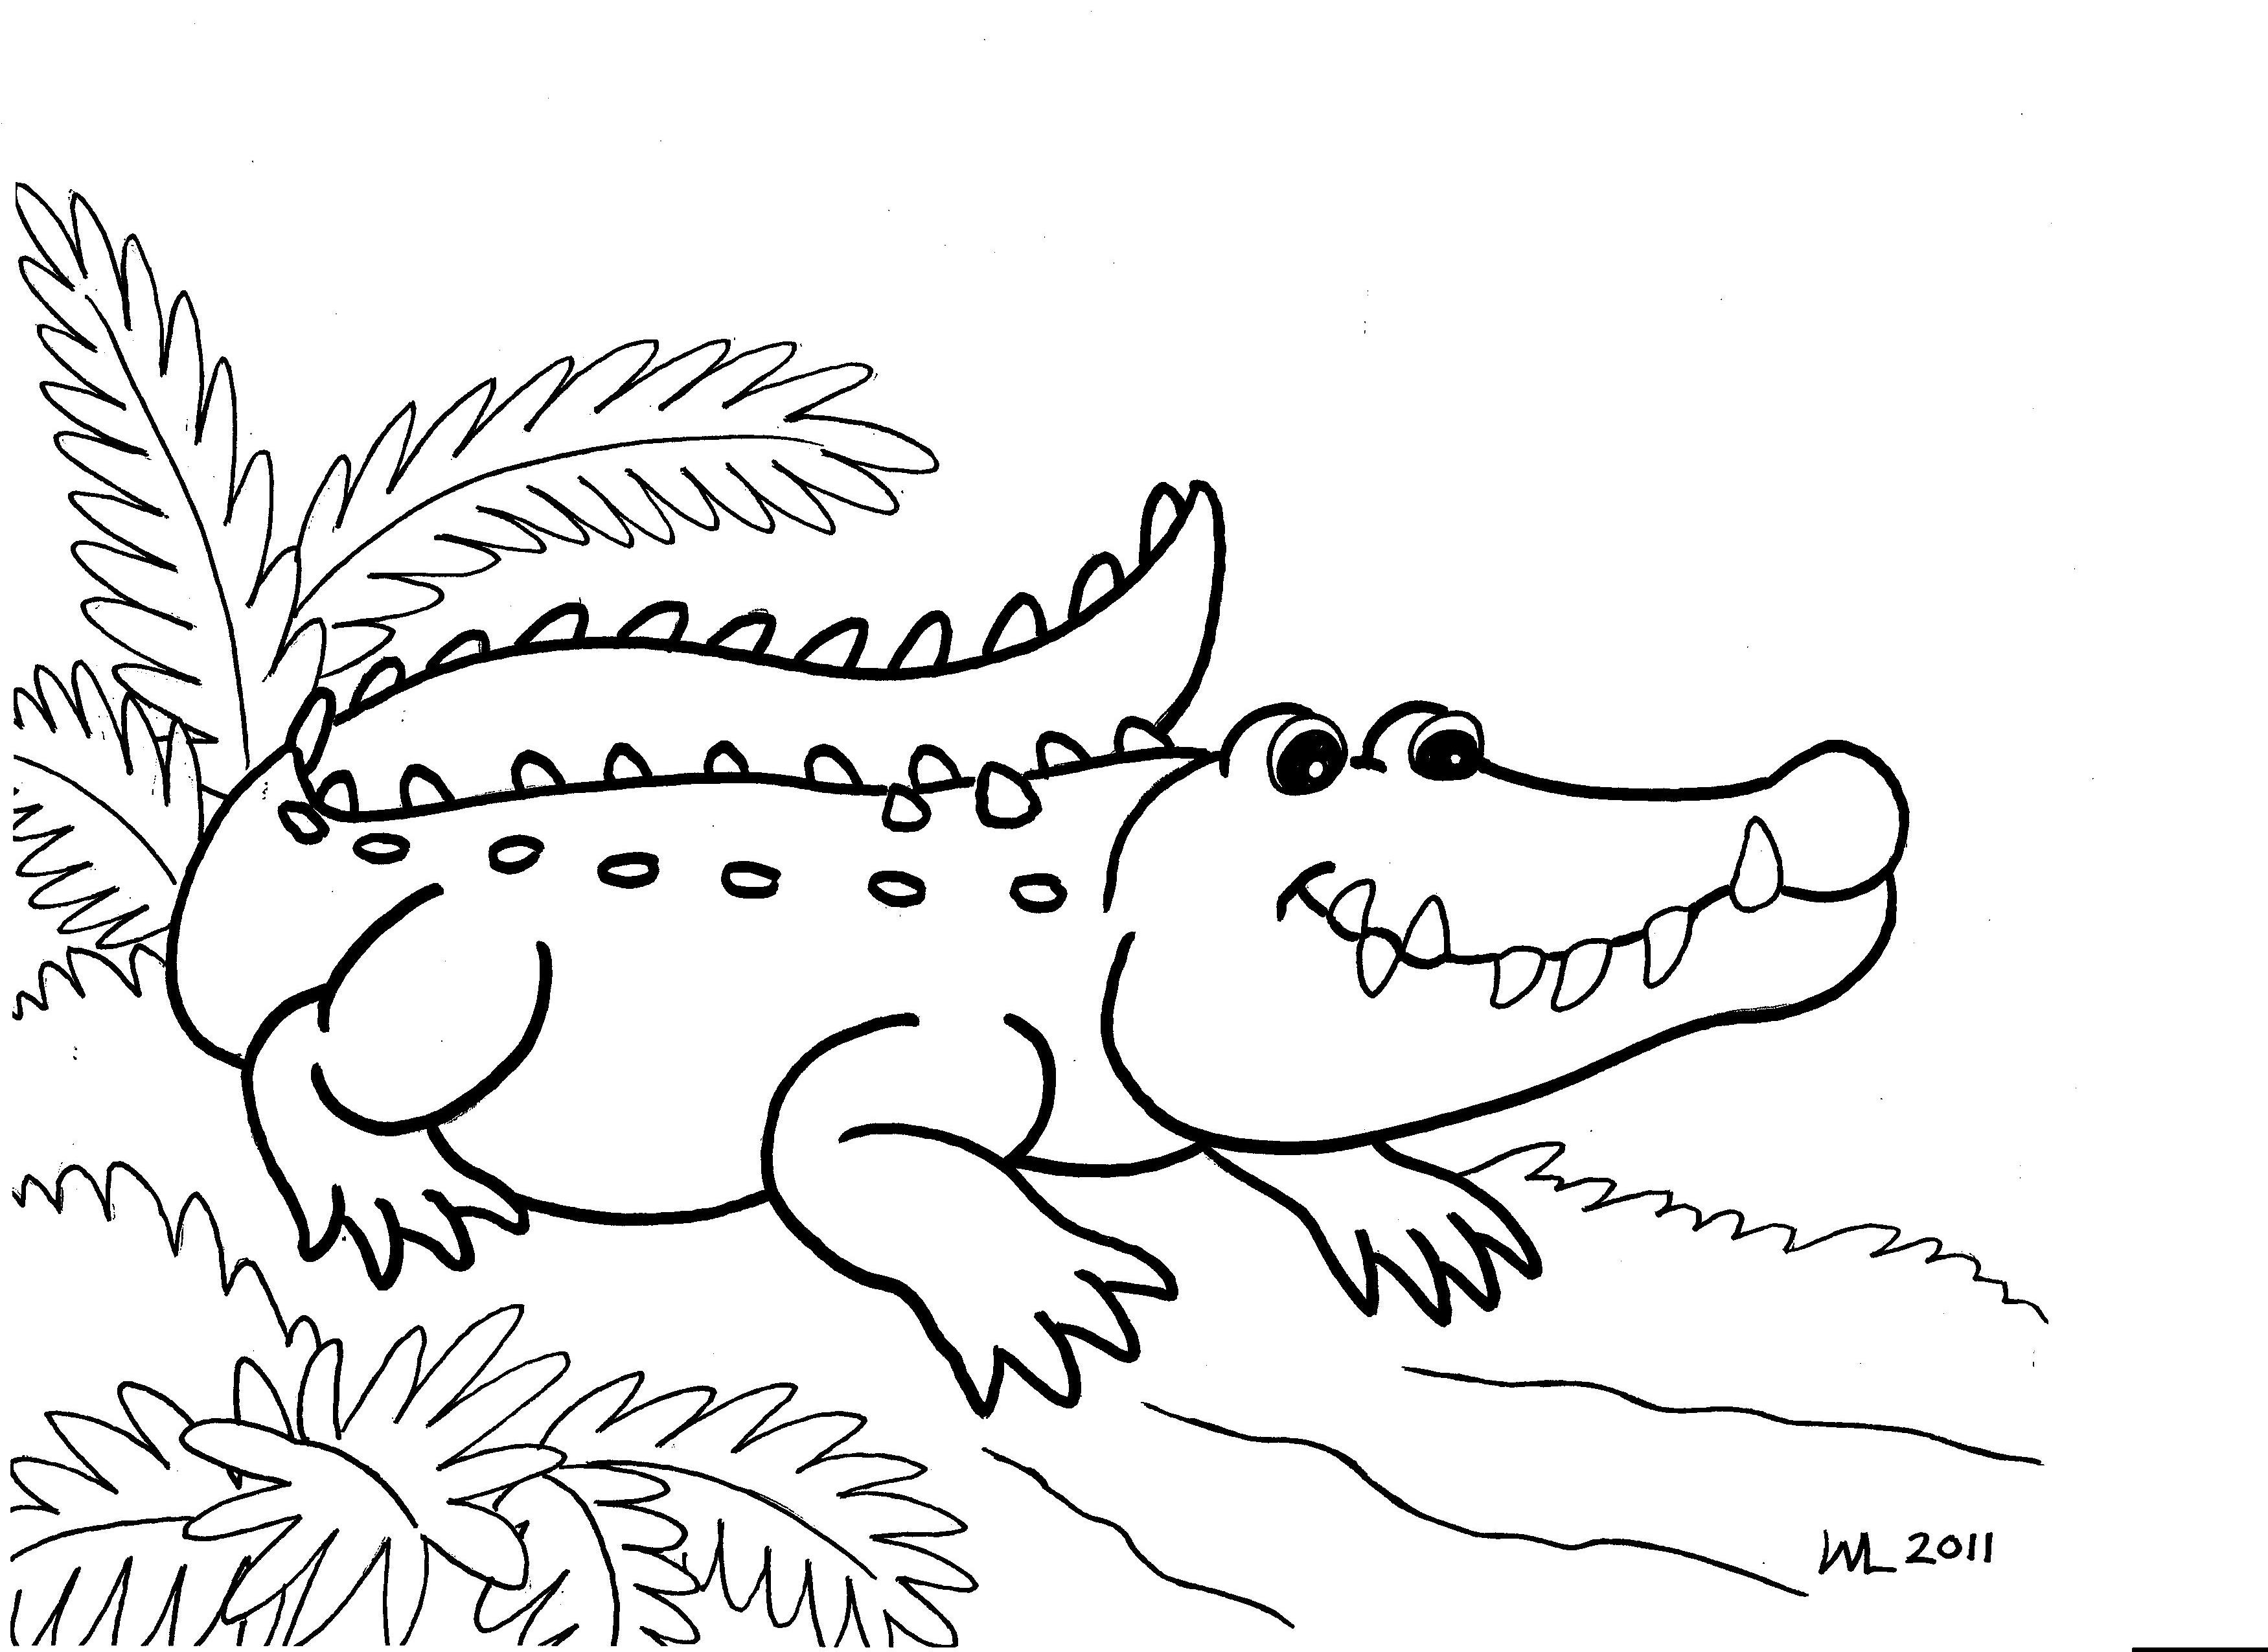 alligator coloring page coloring pages for girls printable alligator coloring page page coloring alligator